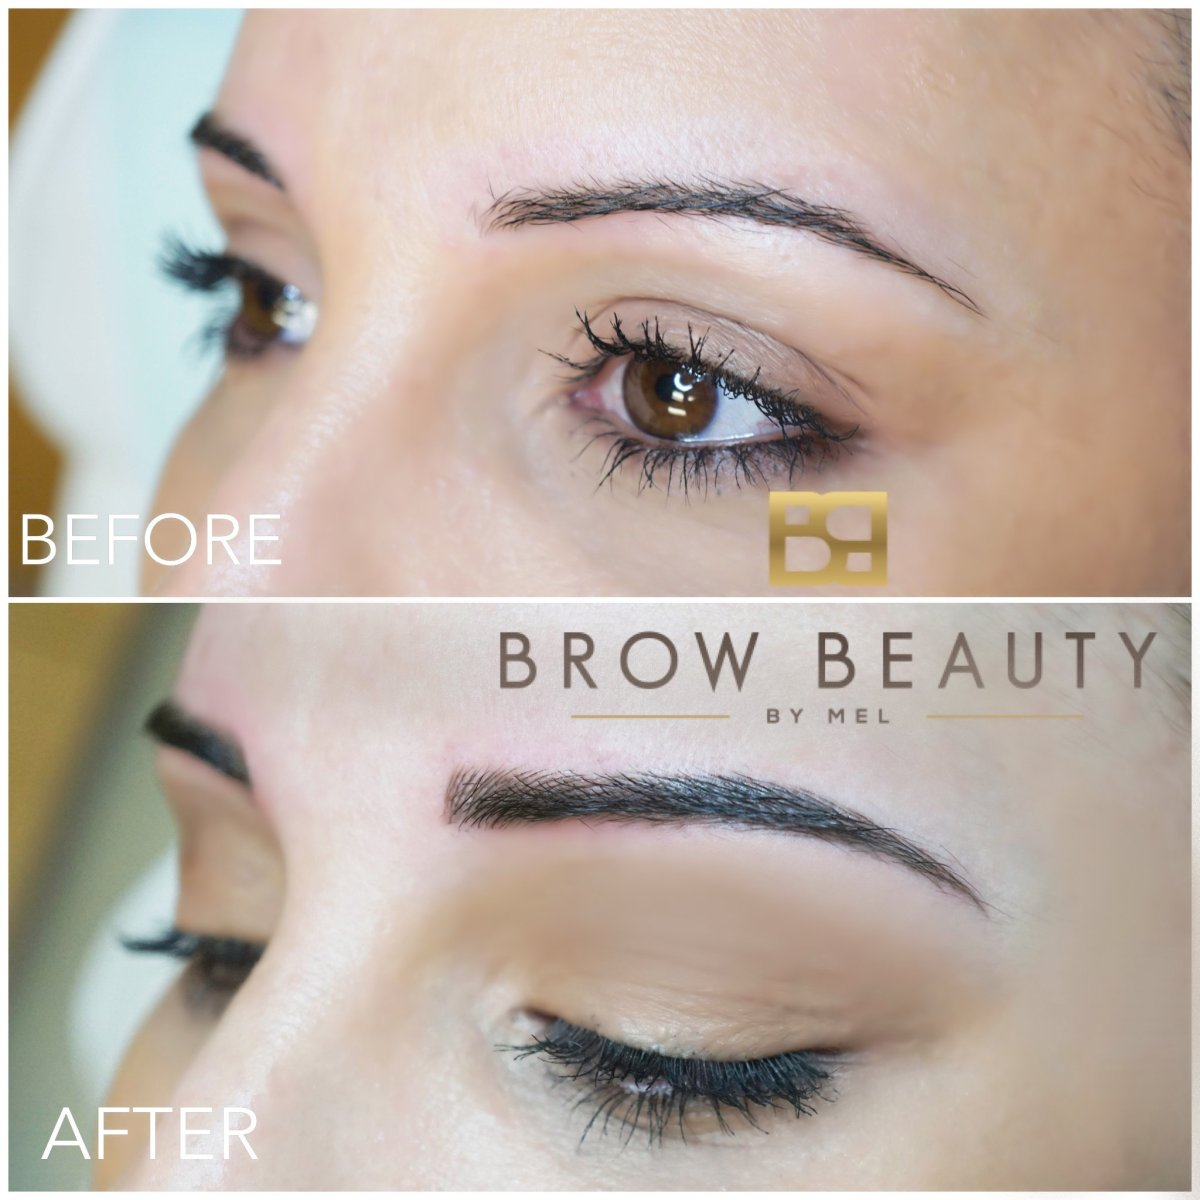 My Microblading Experience! All your questions answered!